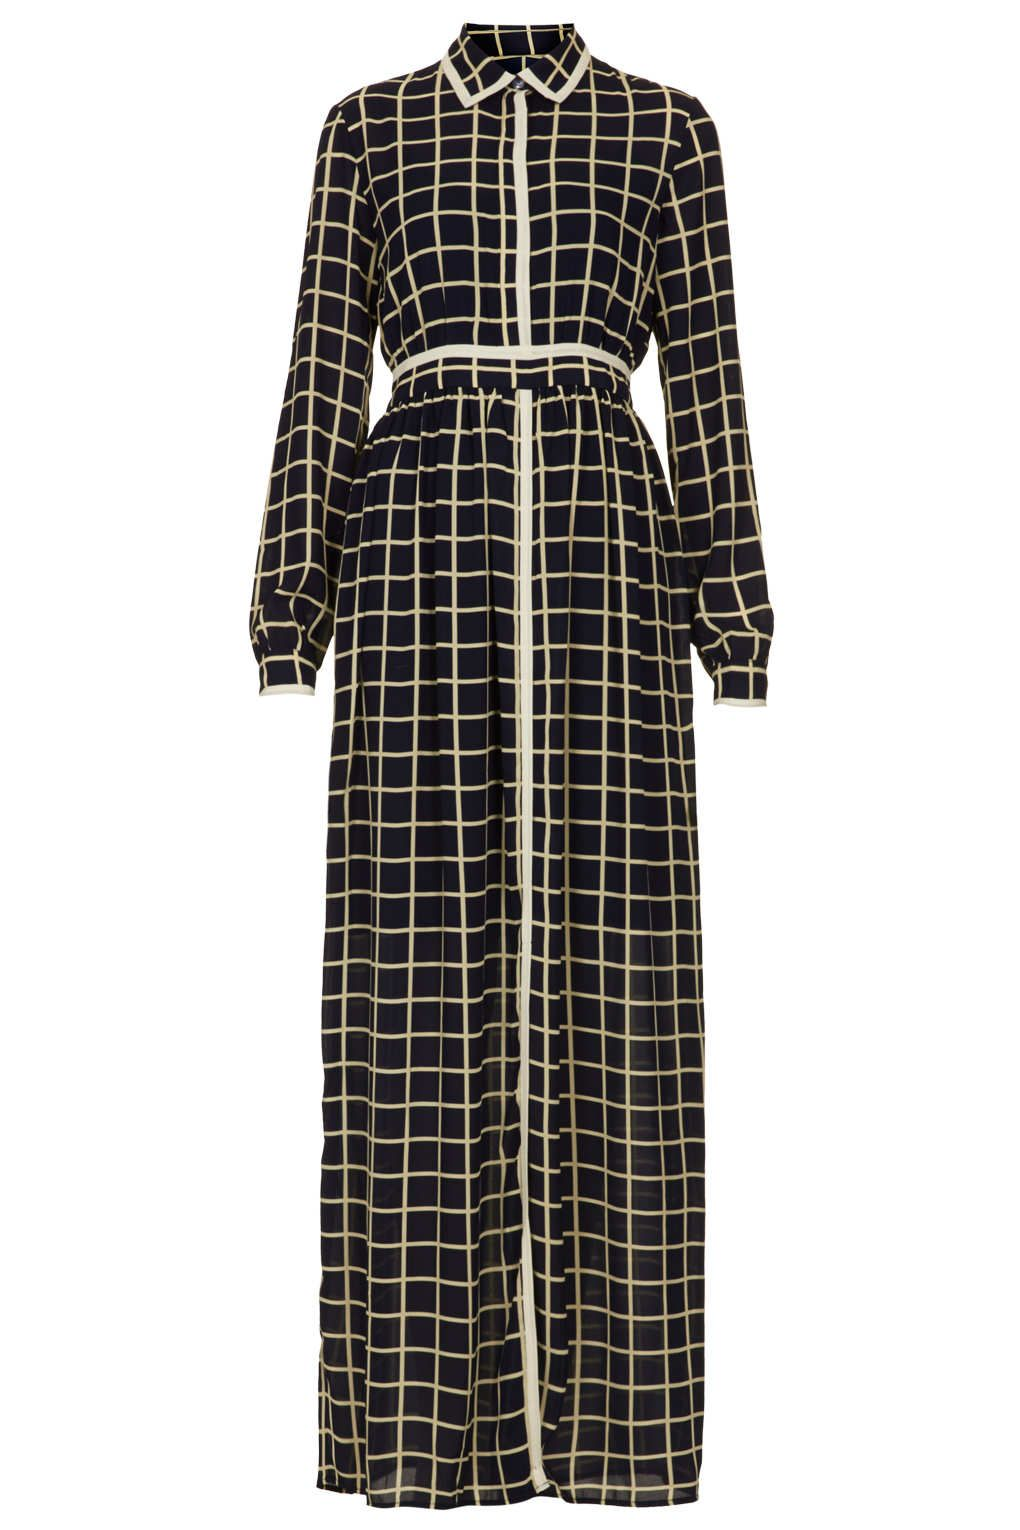 Gino Maxi Dress by Jovonnista - Dresses - Clothing - Topshop | TOGS ...